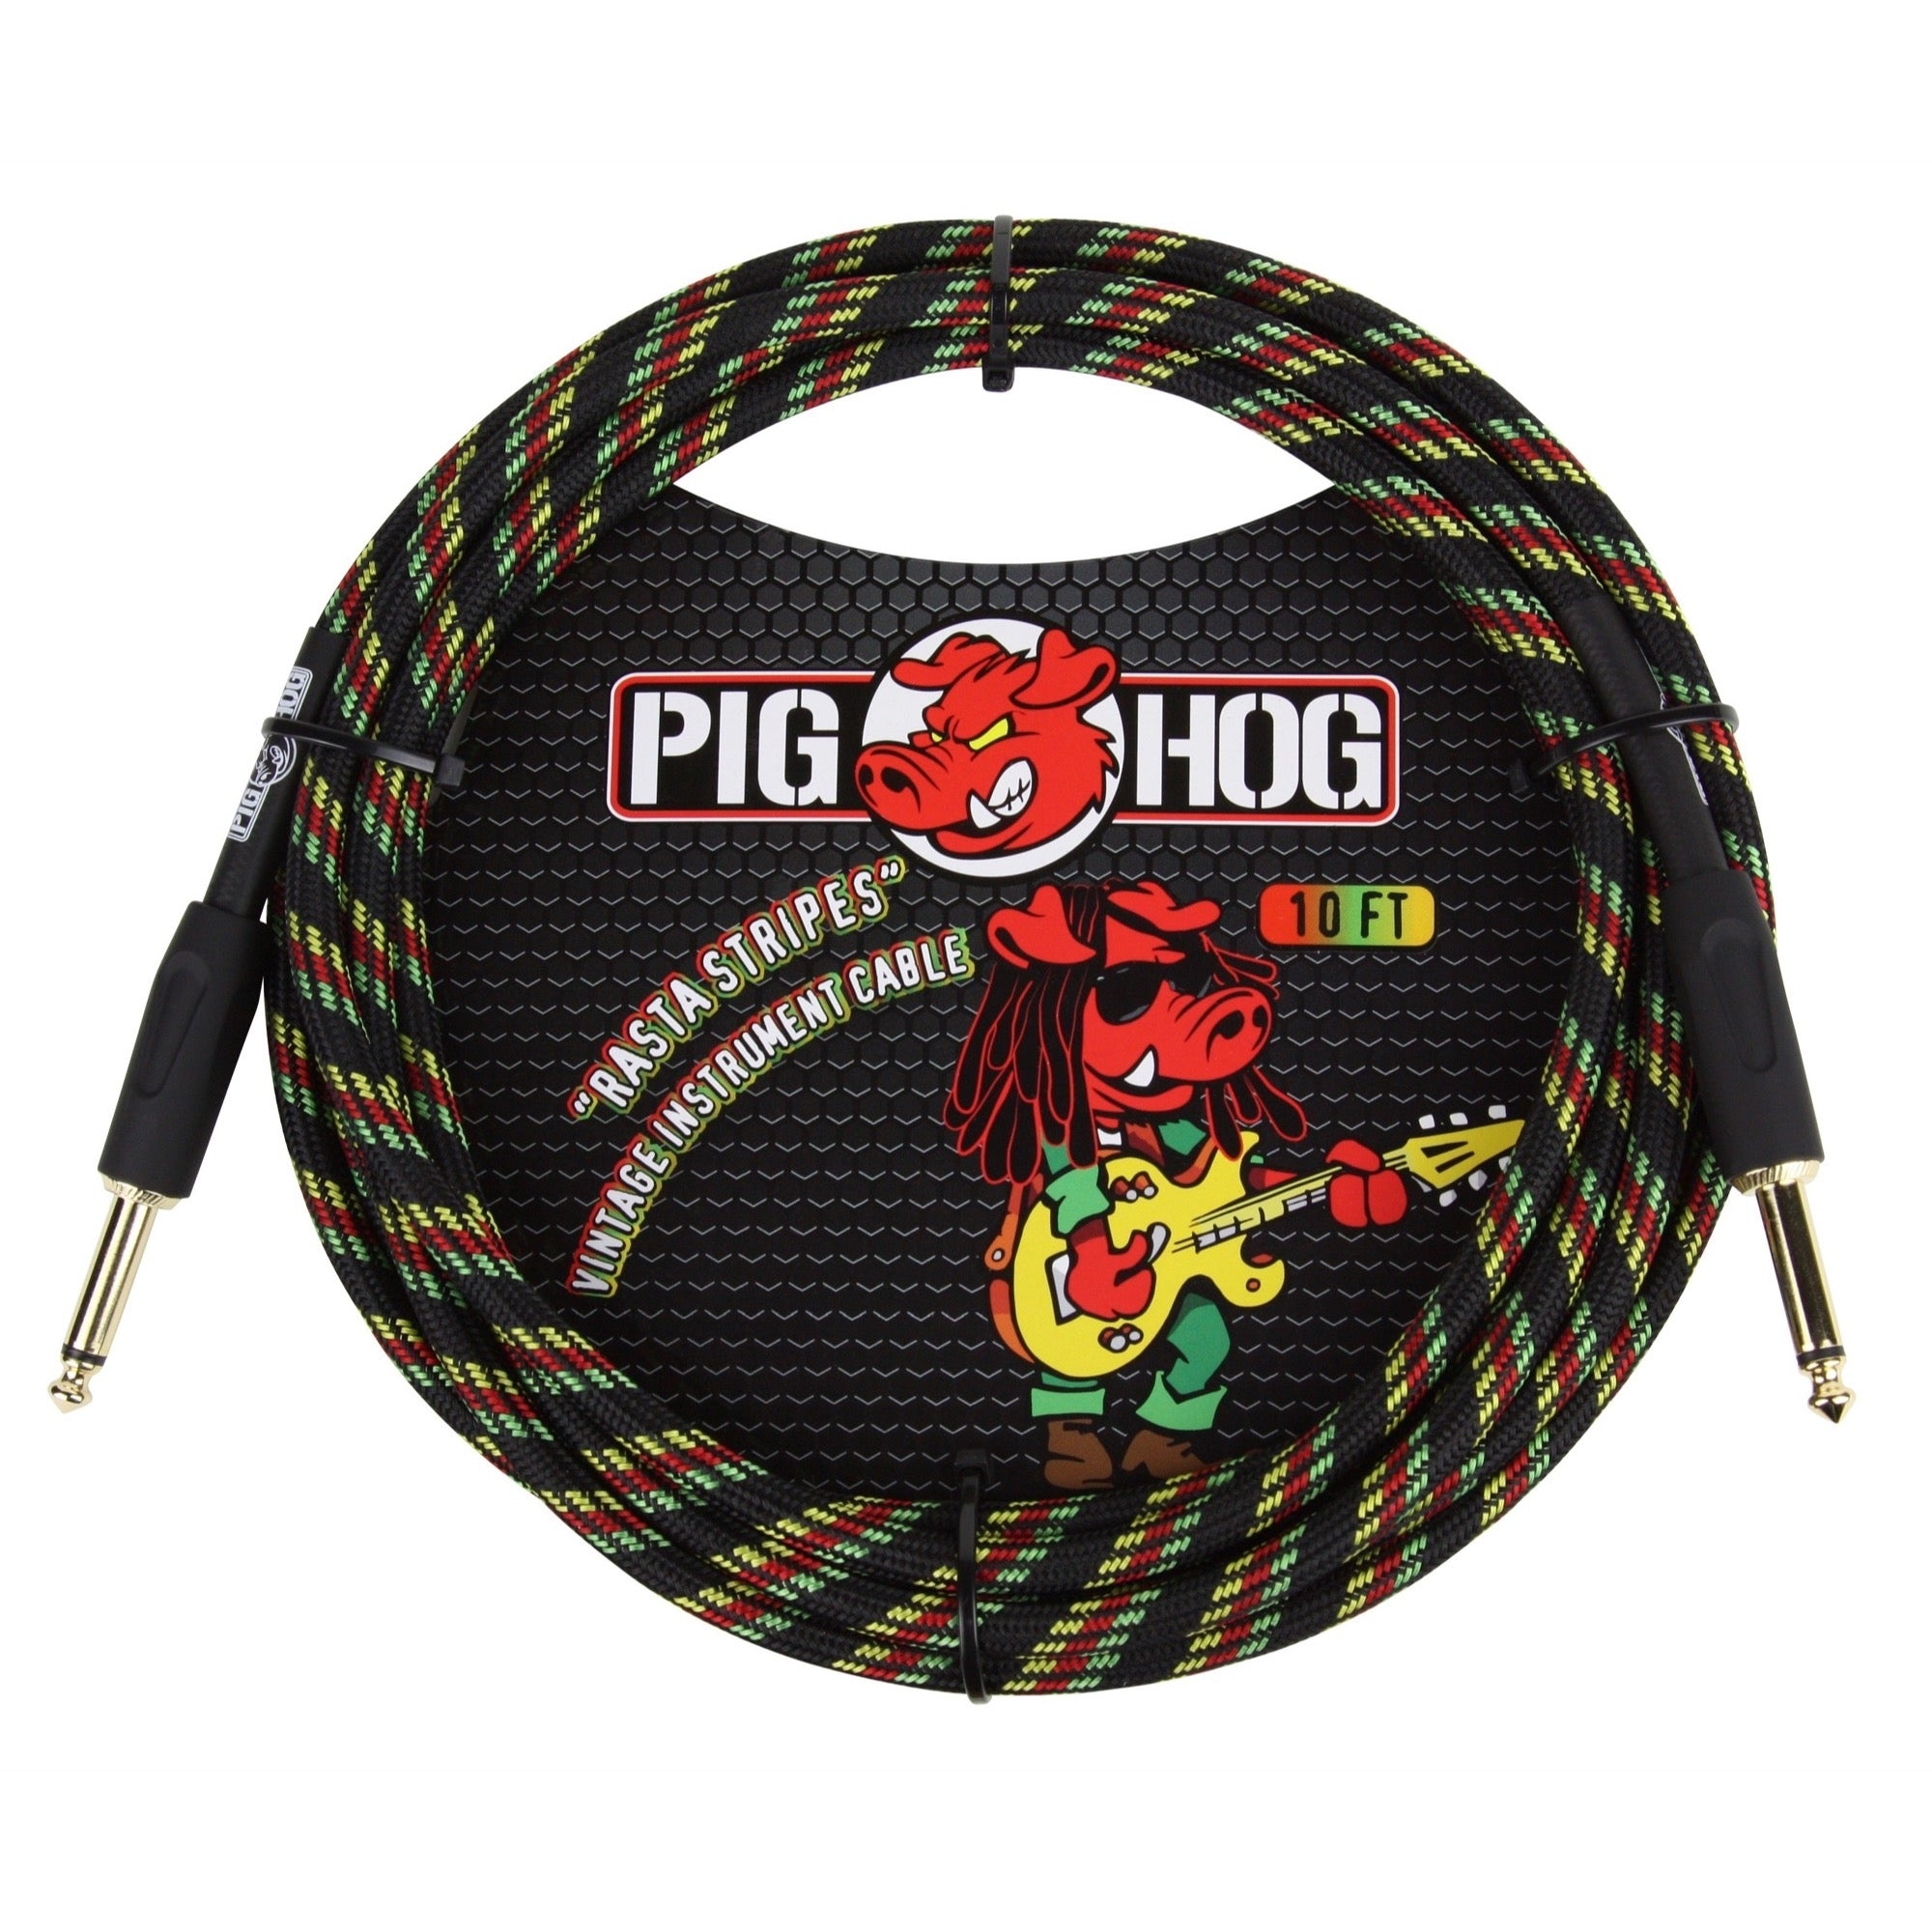 Pig Hog Vintage Series Instrument Cable, 1/4 Inch Straight to 1/4 Inch Straight, Rasta Stripes, 10 Foot